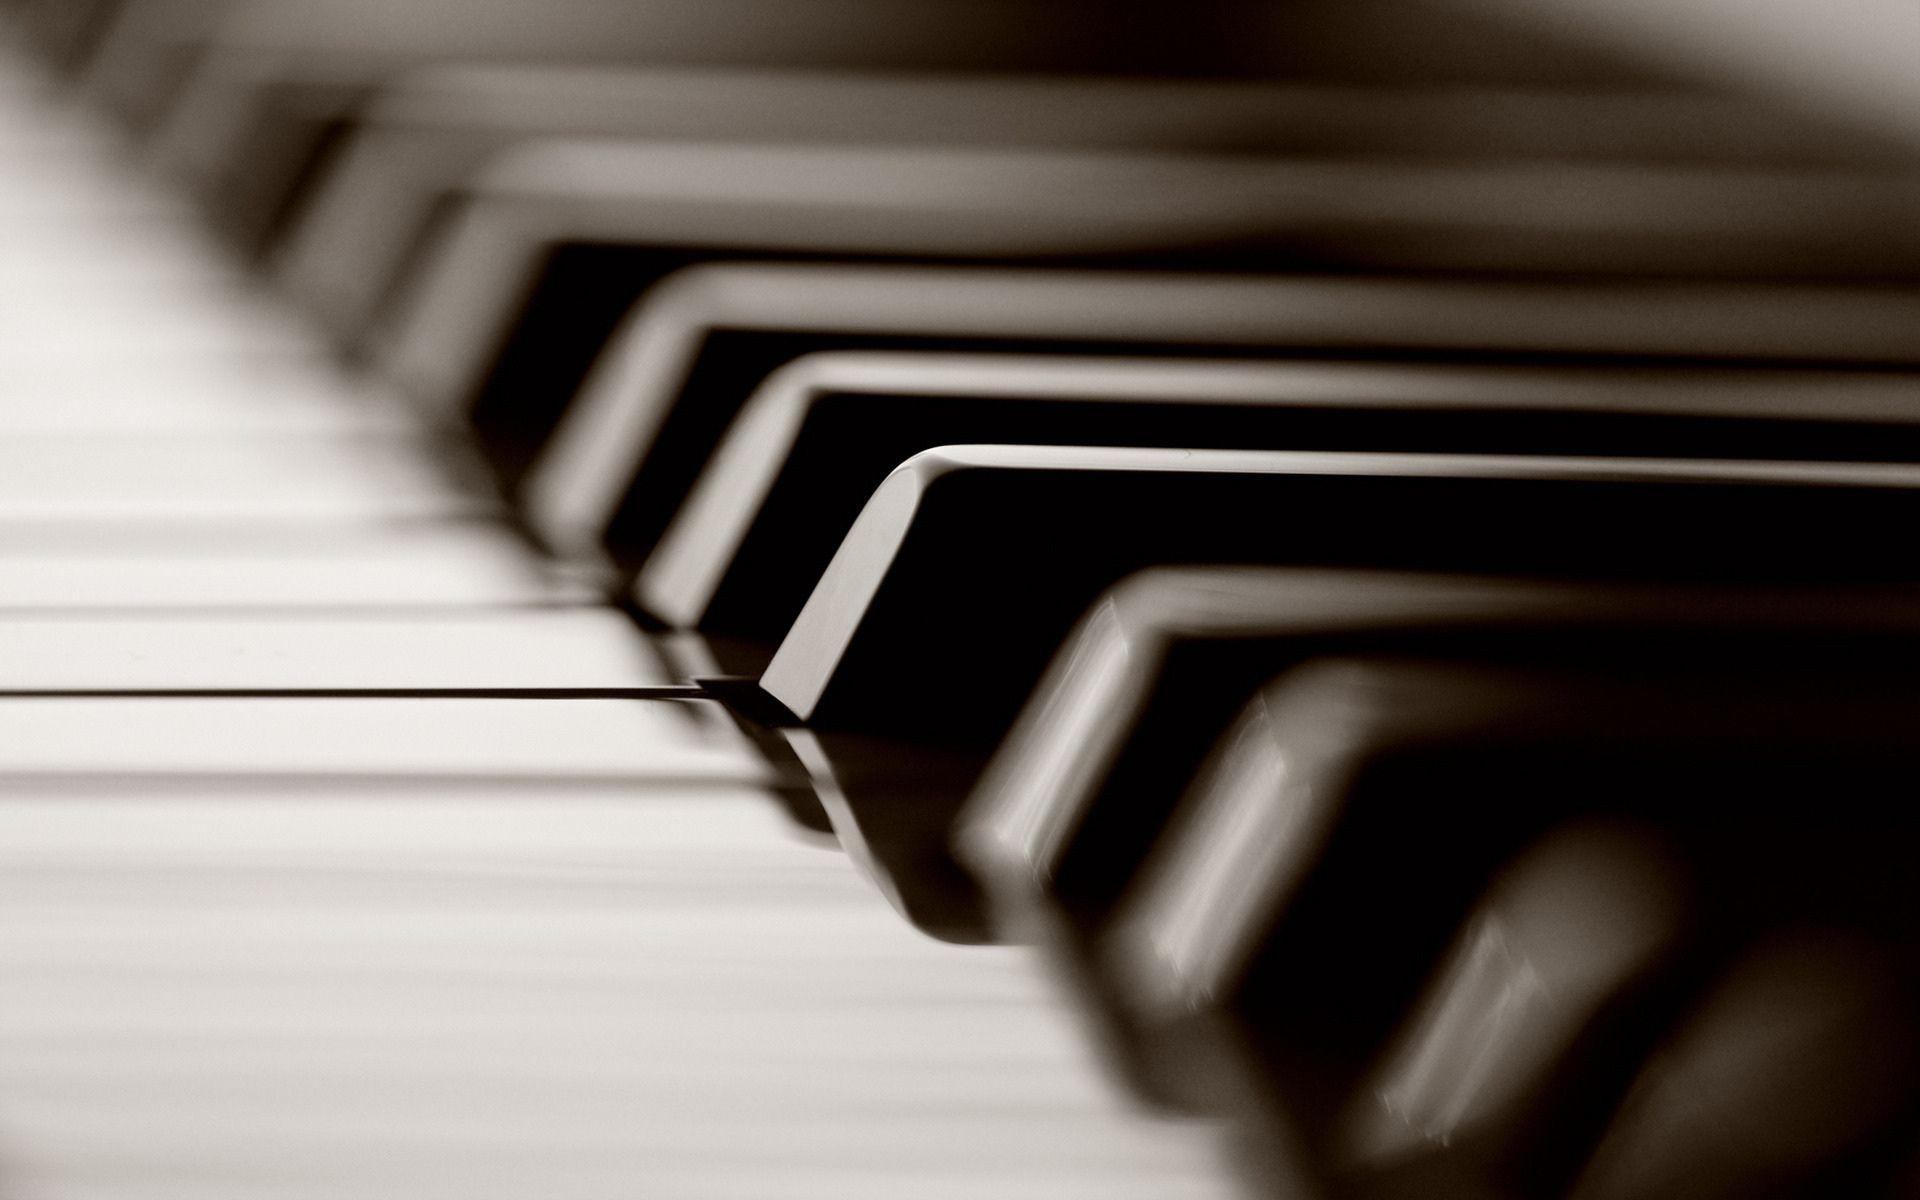 Piano Computer Wallpapers, Desktop Backgrounds 1680x1050 Id: 47766